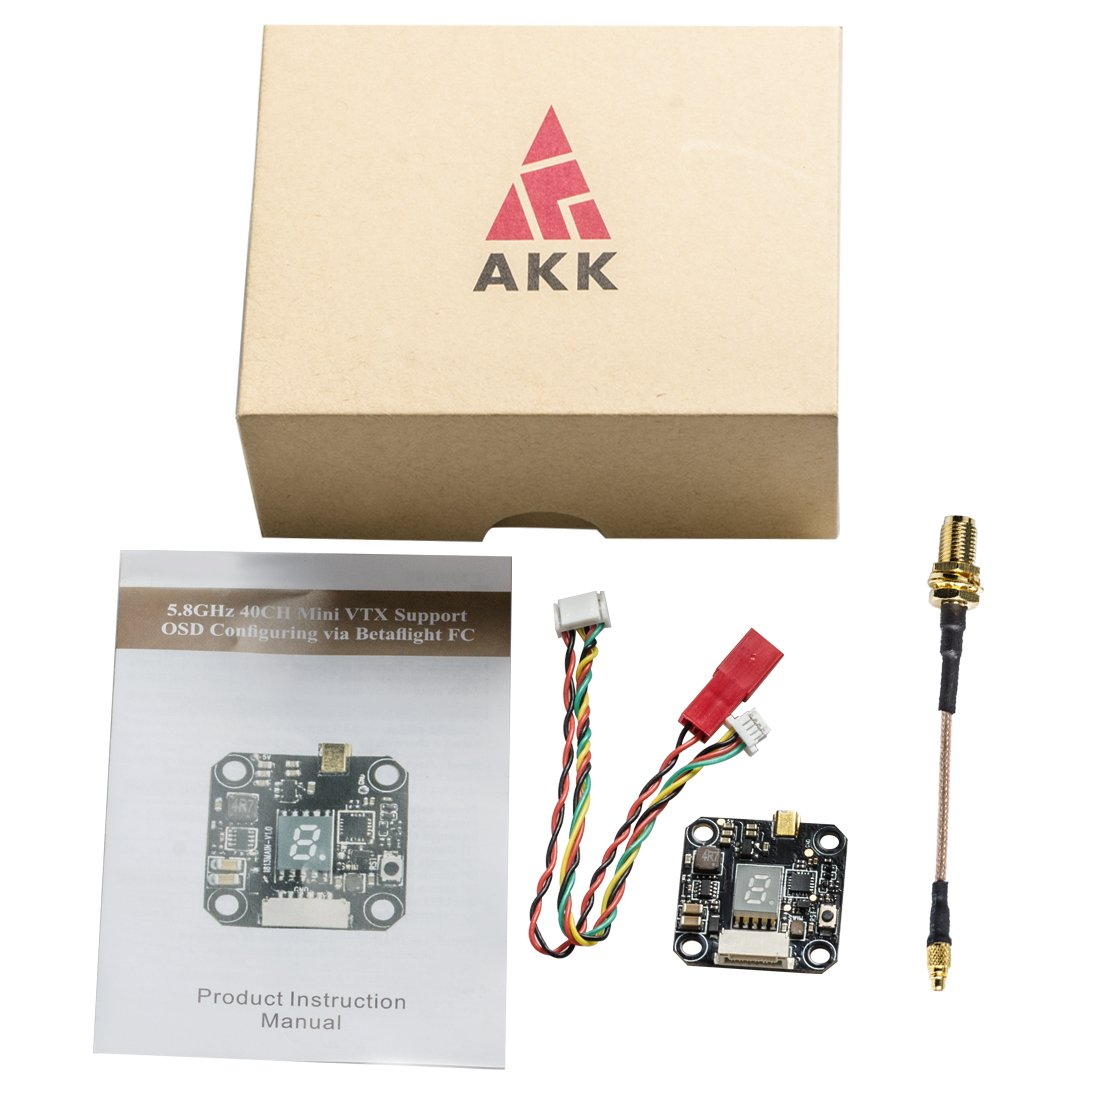 Akk Fx3 58ghz 25mw 200mw 400mw 600mw Switchable Fpv Vtx Wiring Diagram With Mmcx Integrated Osd Fc Configuring Via Betaflight Flight Control Board Toys